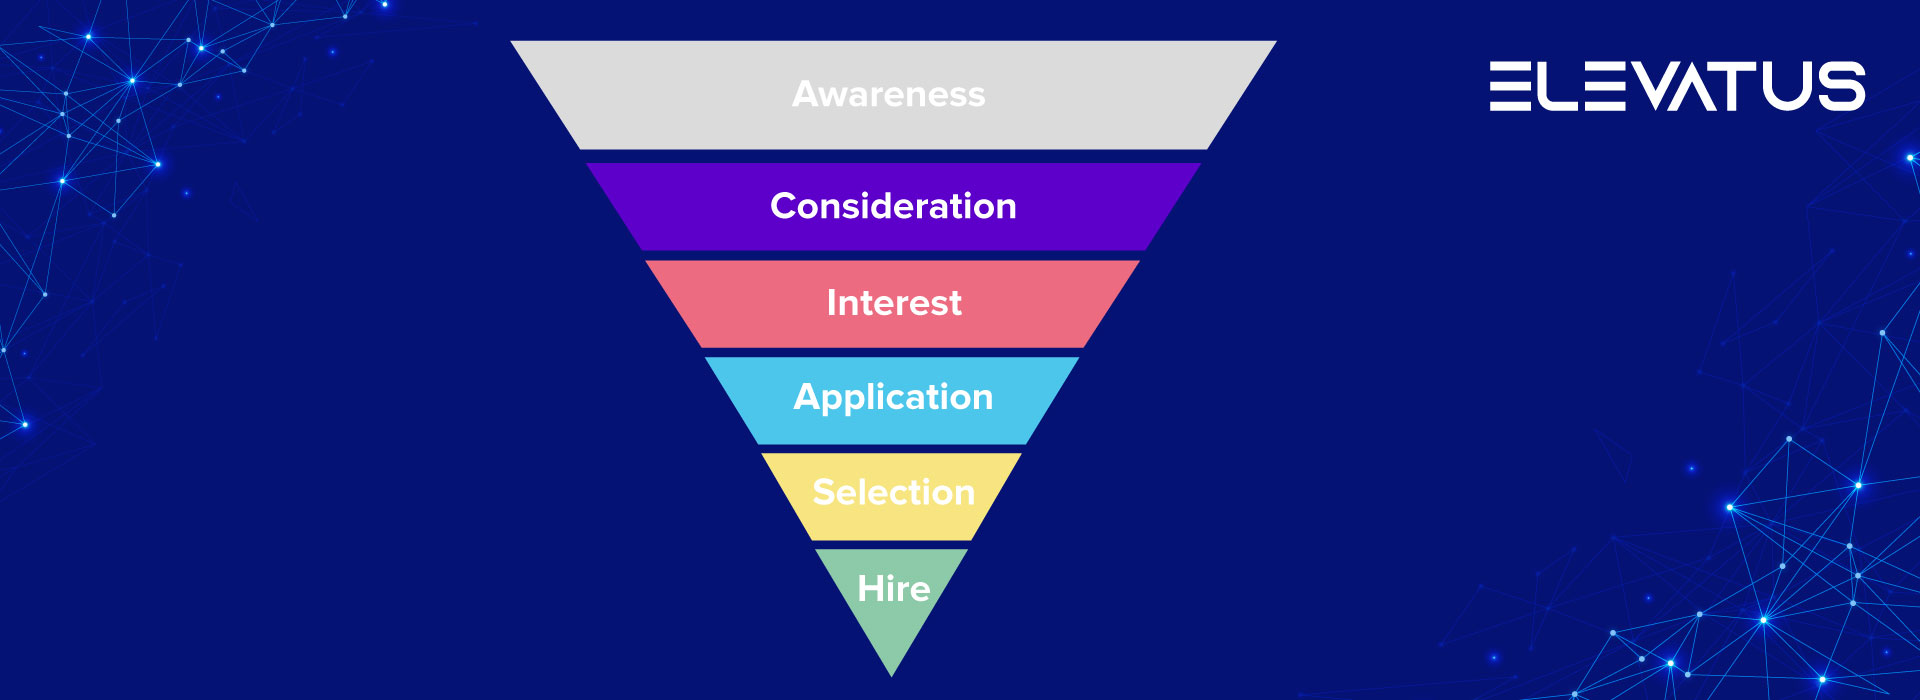 a picture showing the stages of the candidate journey in the form of a pyramid